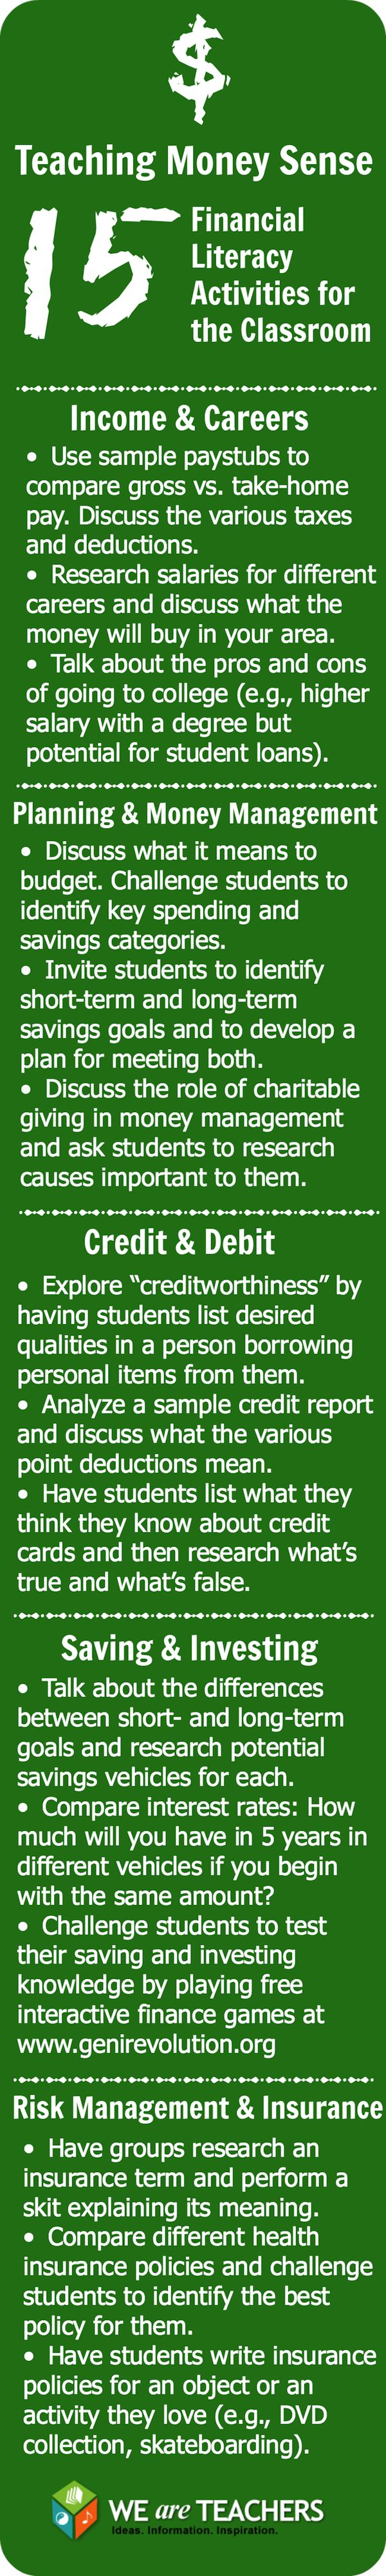 Simple Financial Literacy activities that can develop money sense skills so that every student no matter their background will have a foundation of knowledge to save money and understand the economy and how to be financially successful. Rather than in debt like so many present day adults which also exhibits the need for financial literacy education.